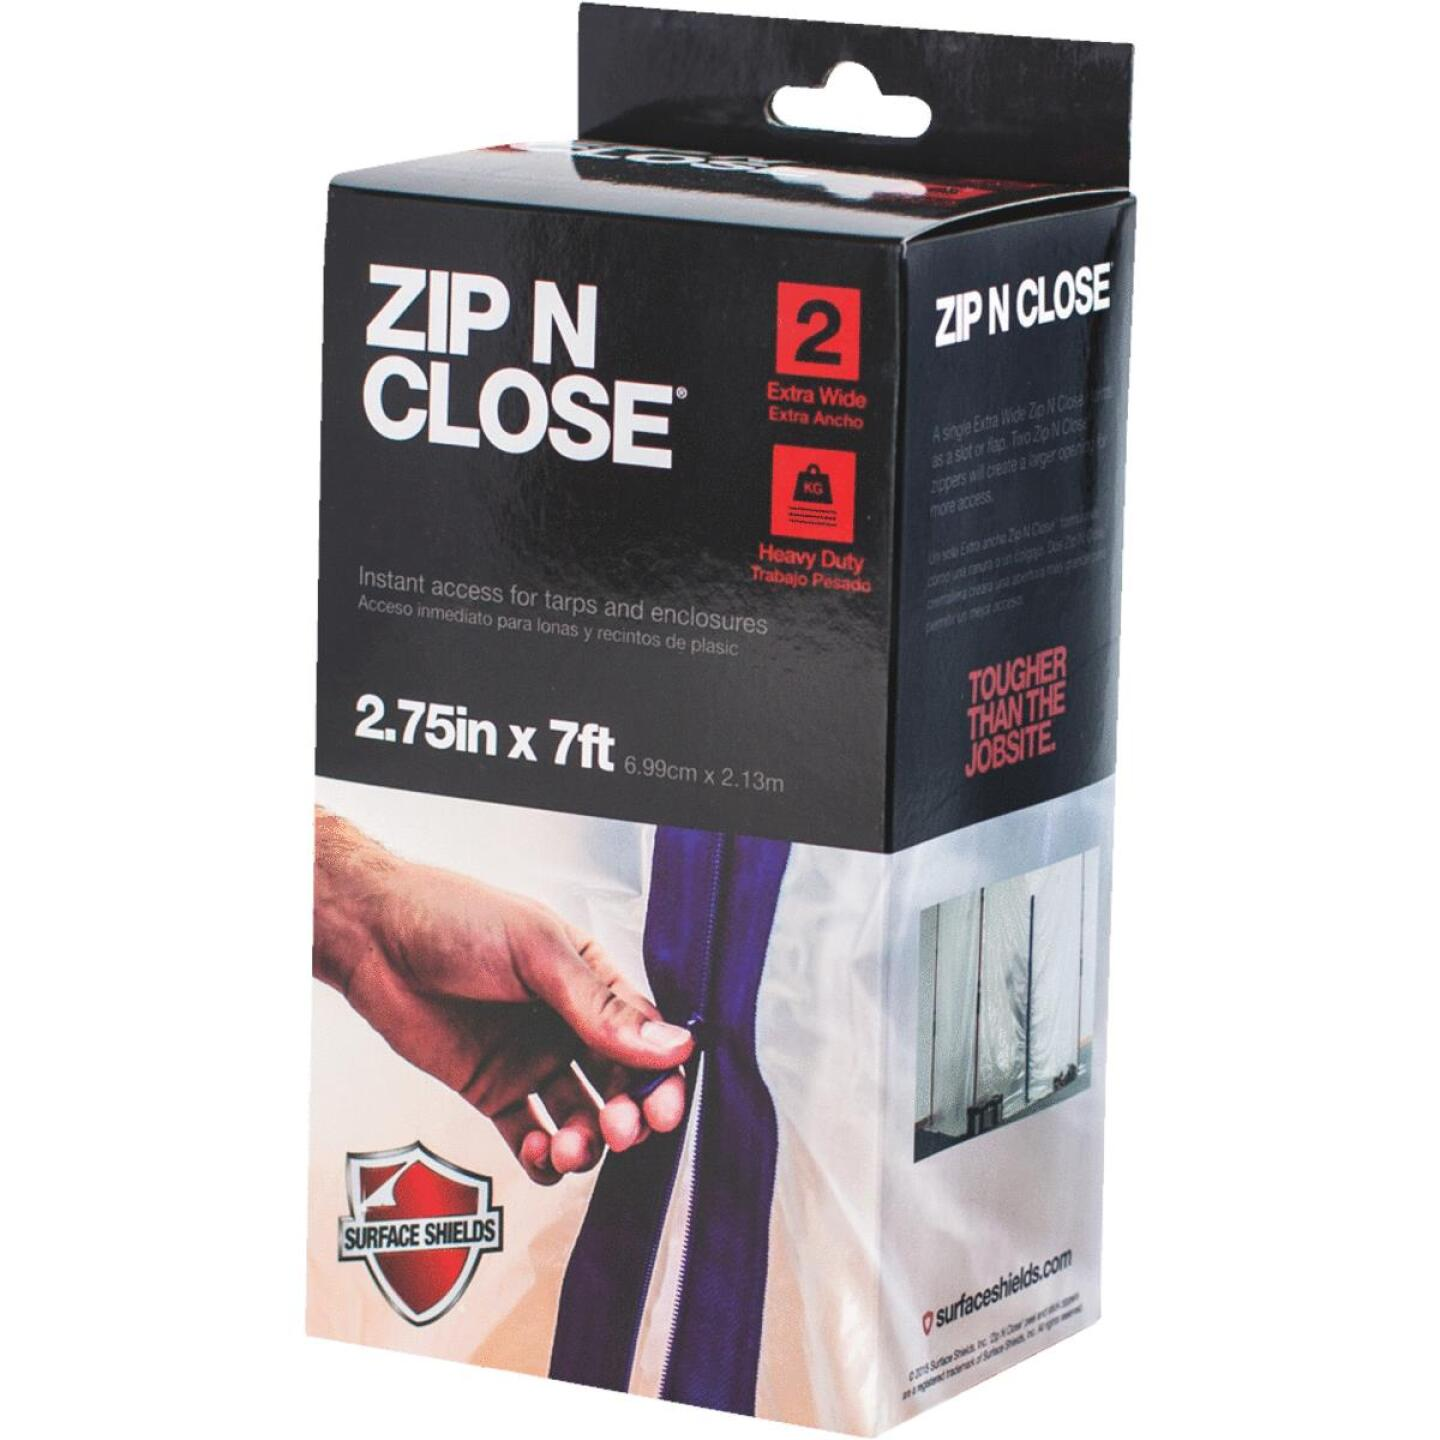 Surface Shields Zip N Close 2 3/4 In. X 7 Ft. Blue Peel and Stick Plastic Barrier Zipper (2-Pack) Image 1